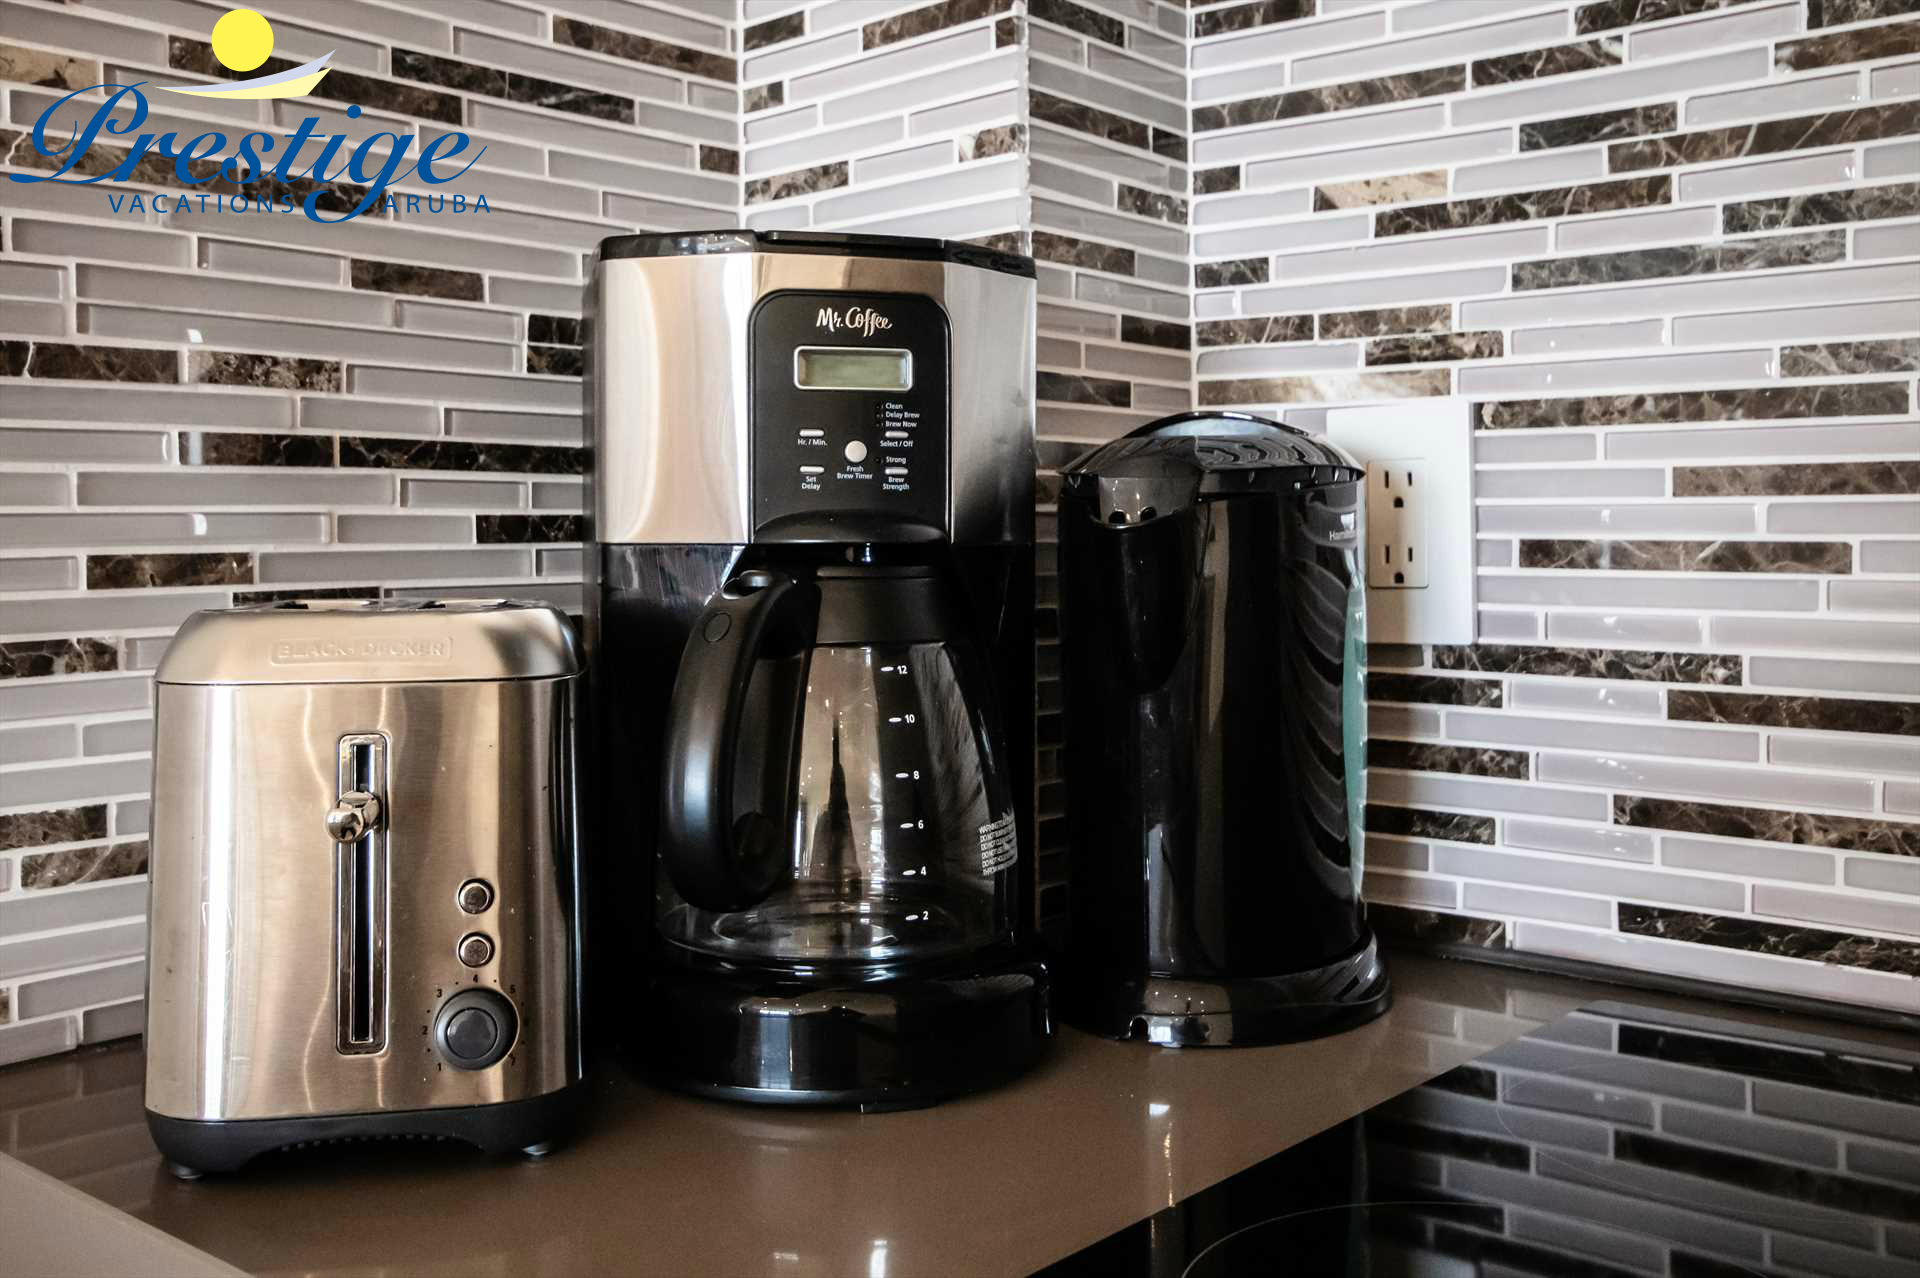 Your standard small kitchen appliances